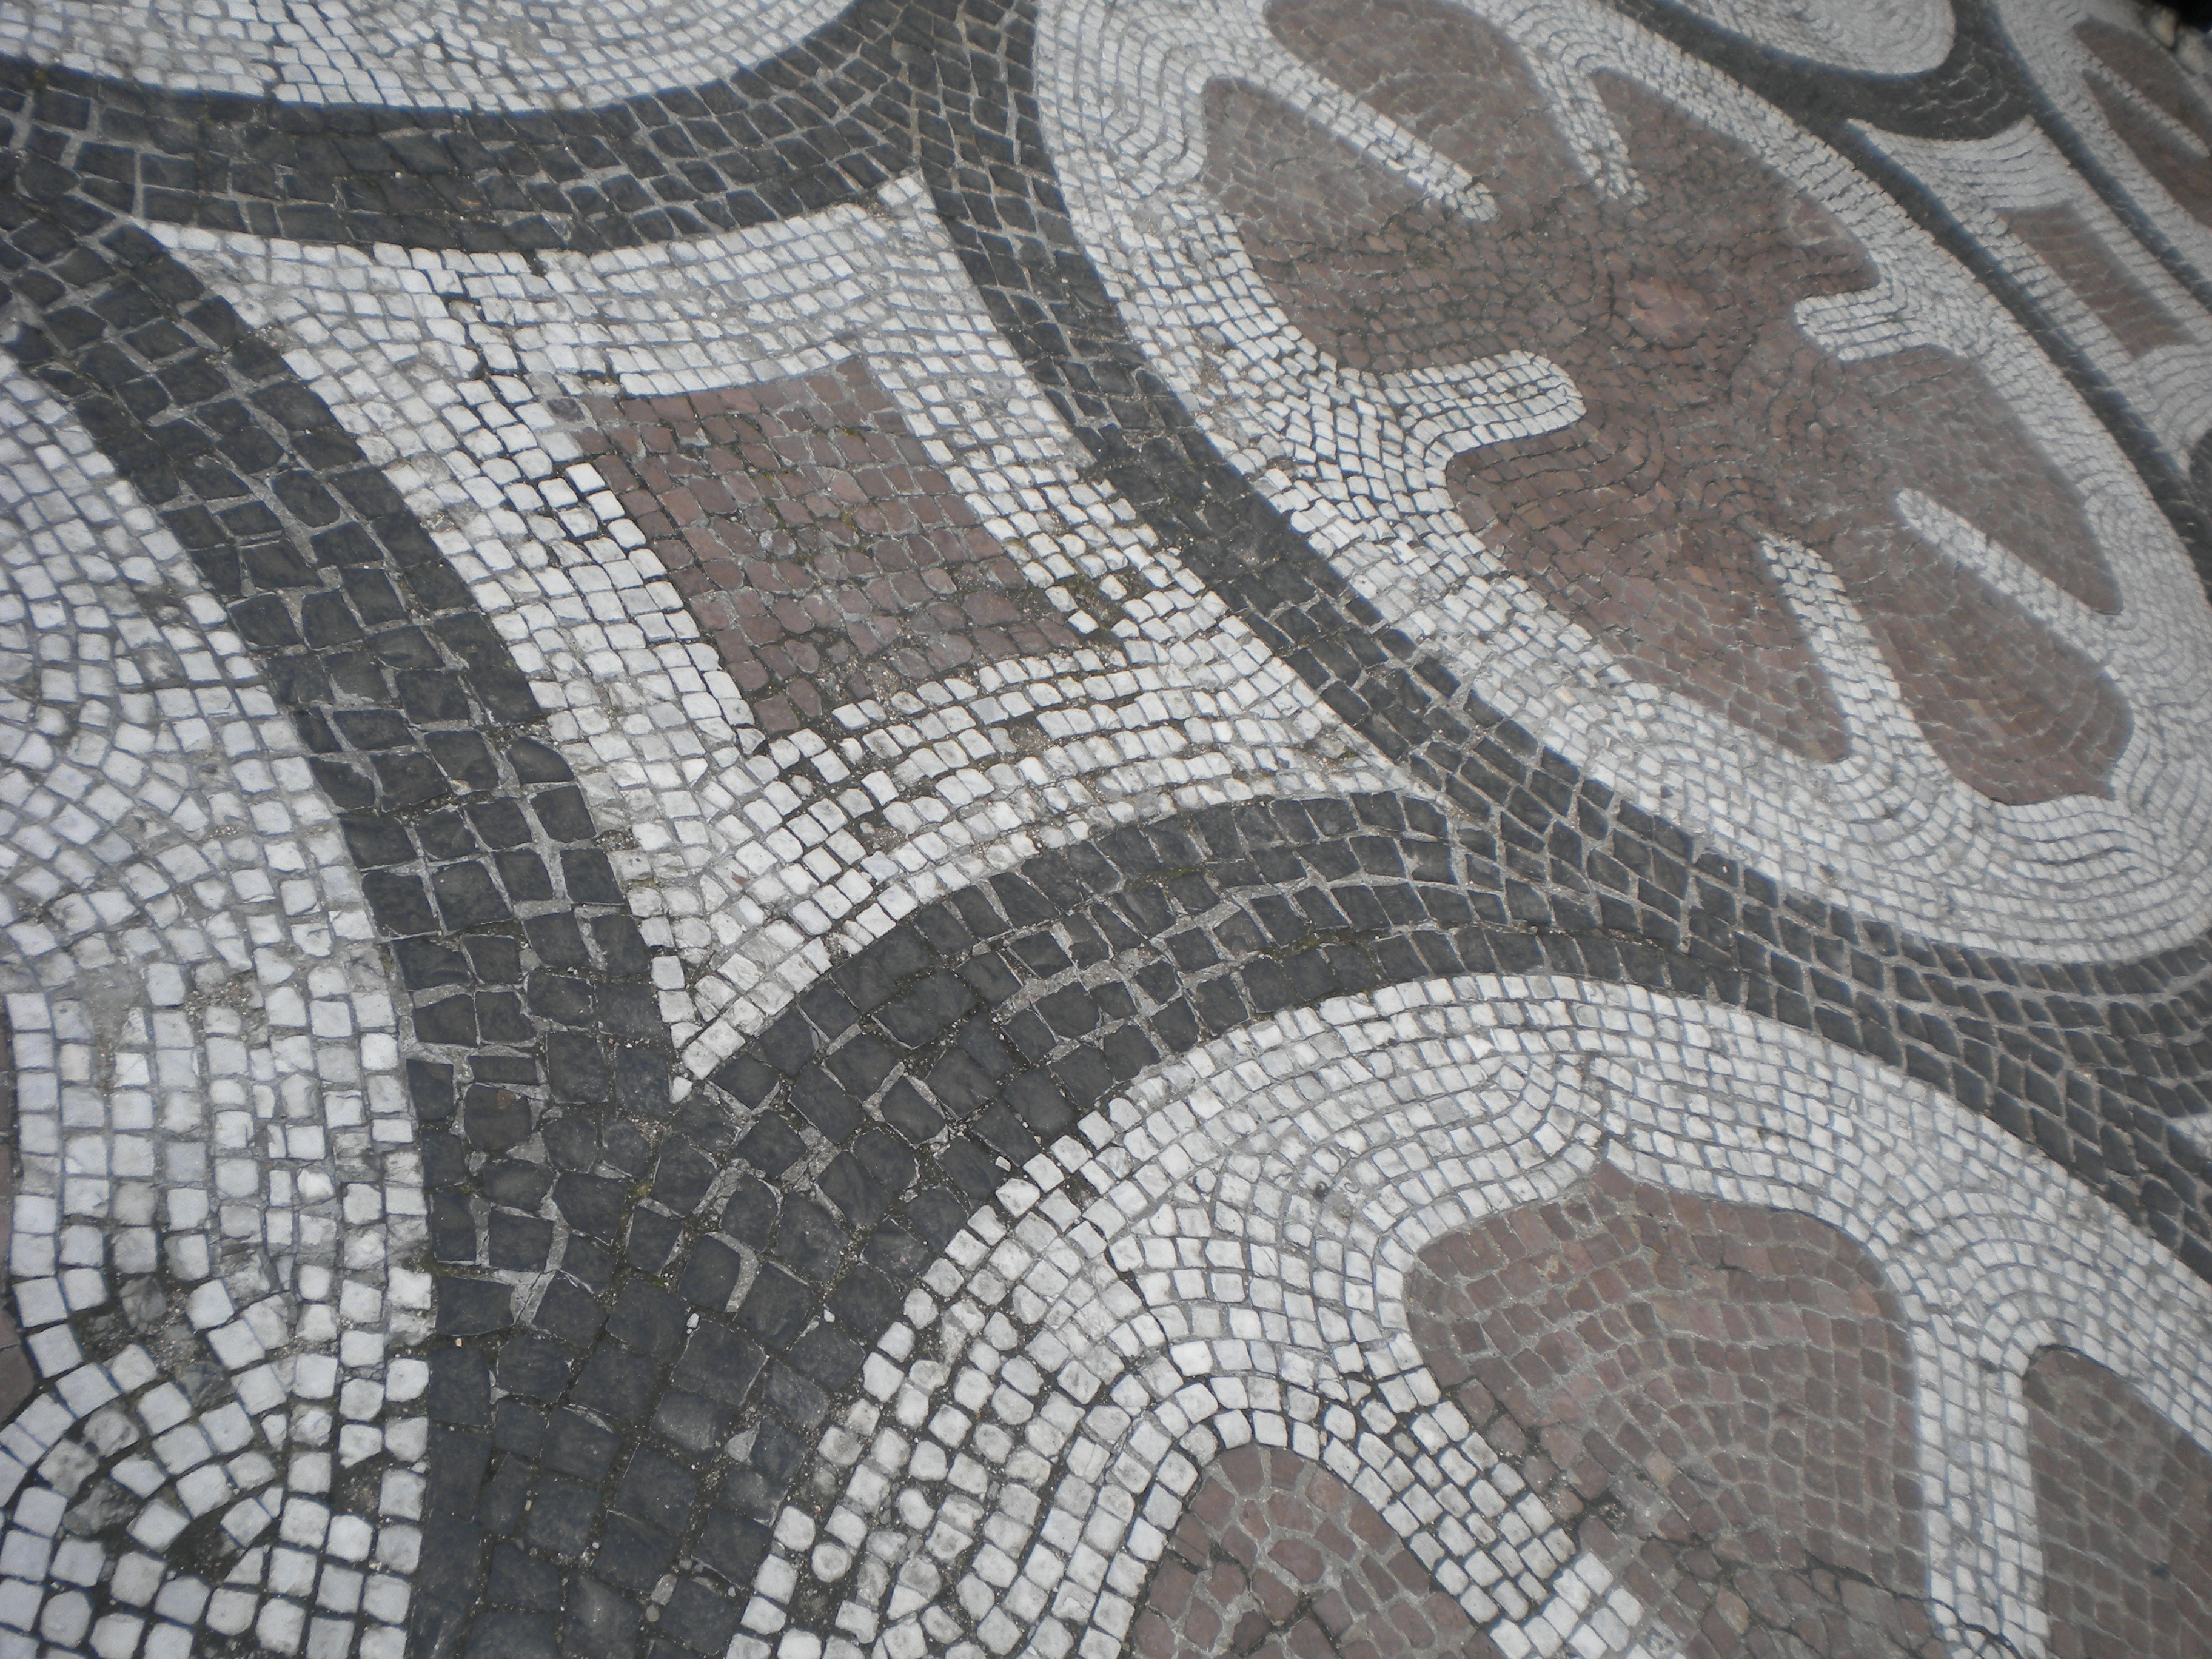 amelianborg castle 3 – mosaic tiles | temporarily lost